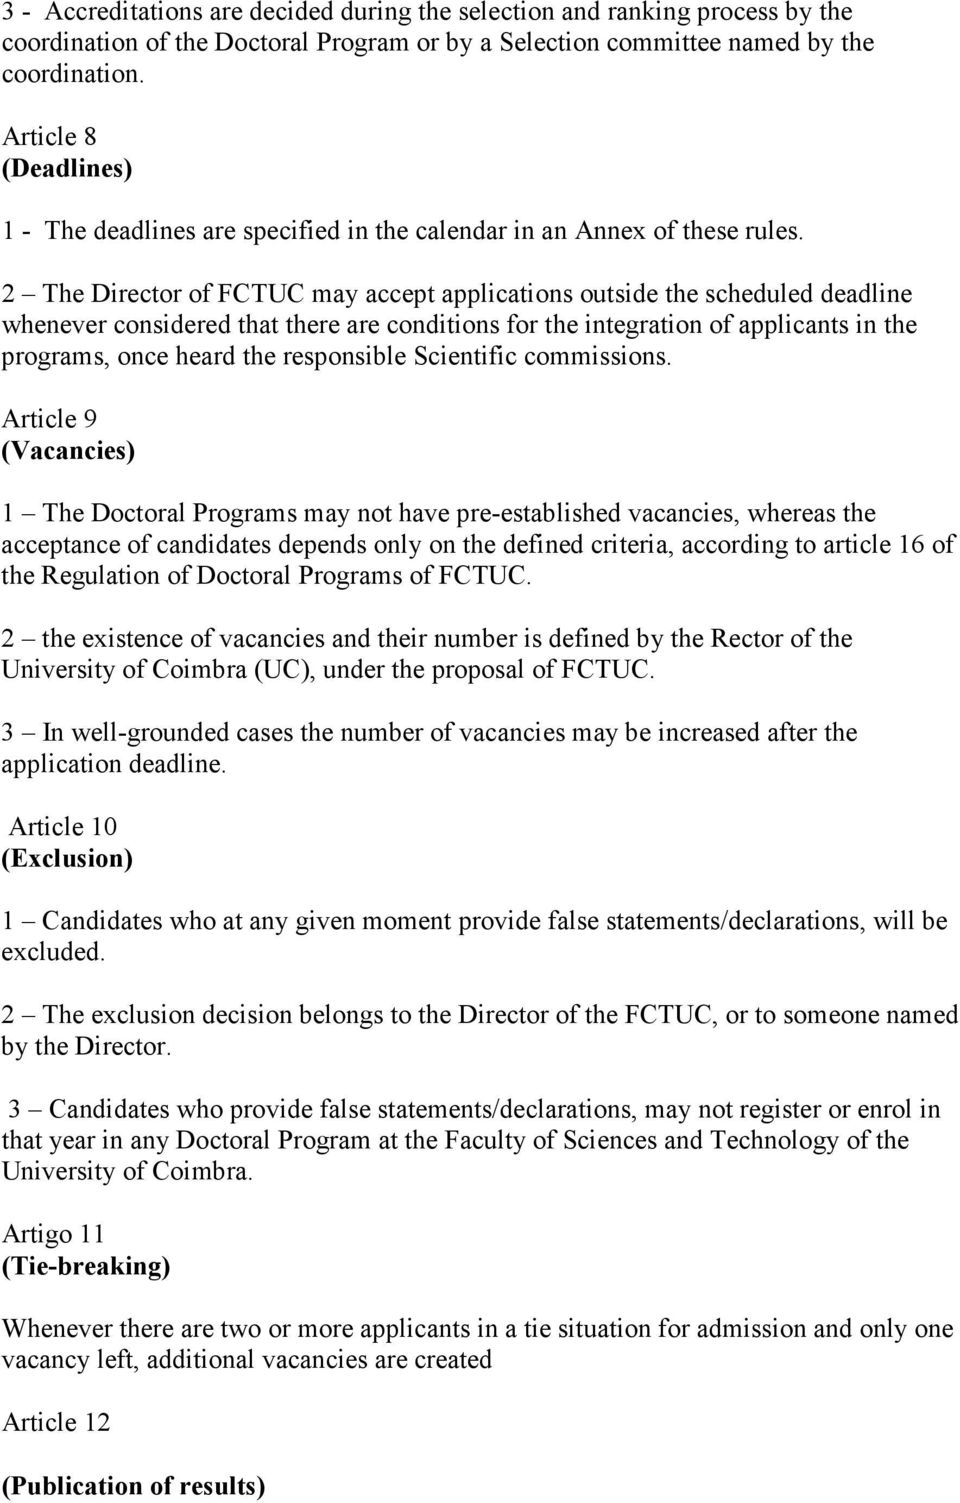 2 The Director of FCTUC may accept applications outside the scheduled deadline whenever considered that there are conditions for the integration of applicants in the programs, once heard the